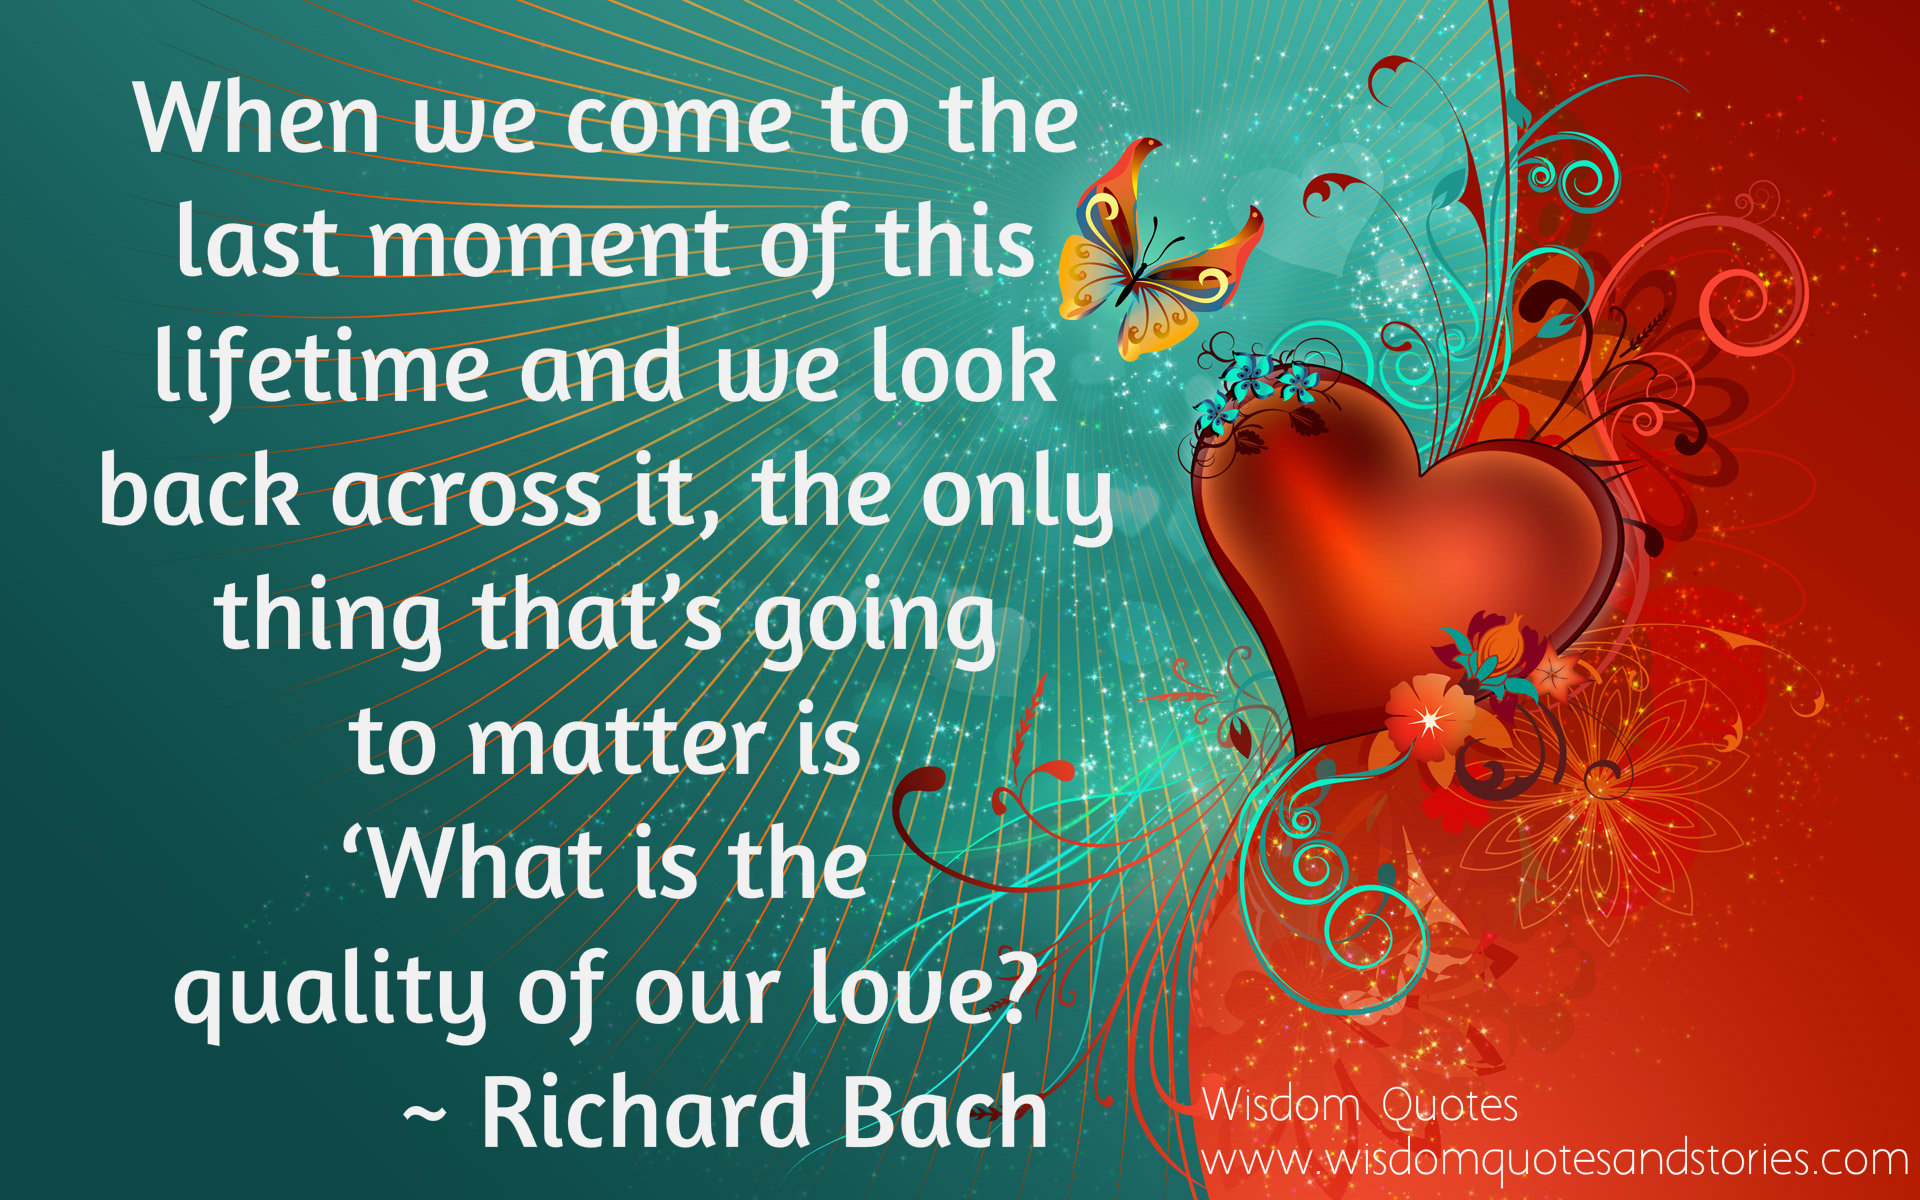 When we come to the last moment of our lifetime , only thing that matters 'What is the quality of our love ?' - Richard Bach